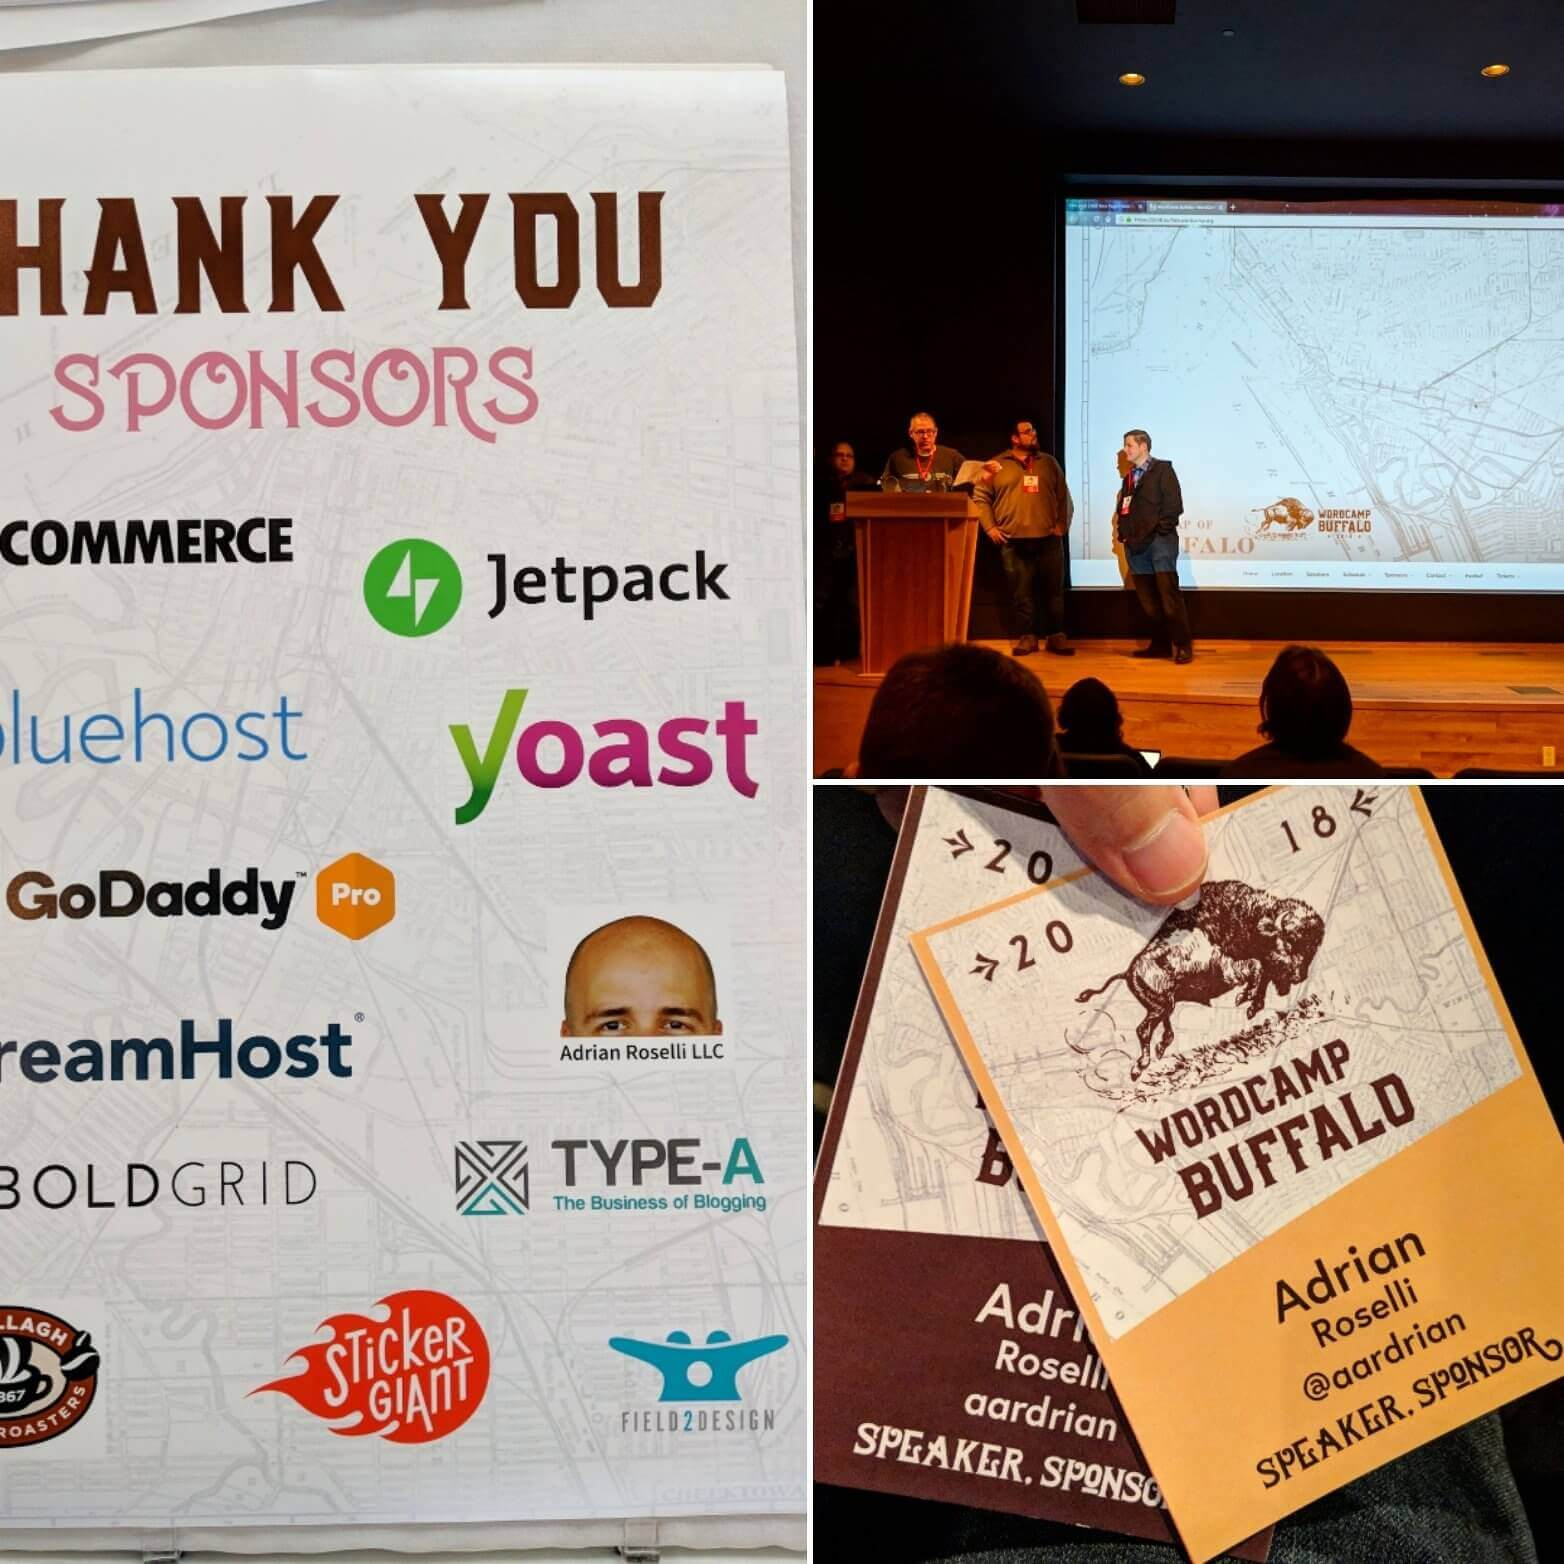 My two badges (speaker and sponsor), the sponsor poster with my head, and the organizer team delivering opening remarks.